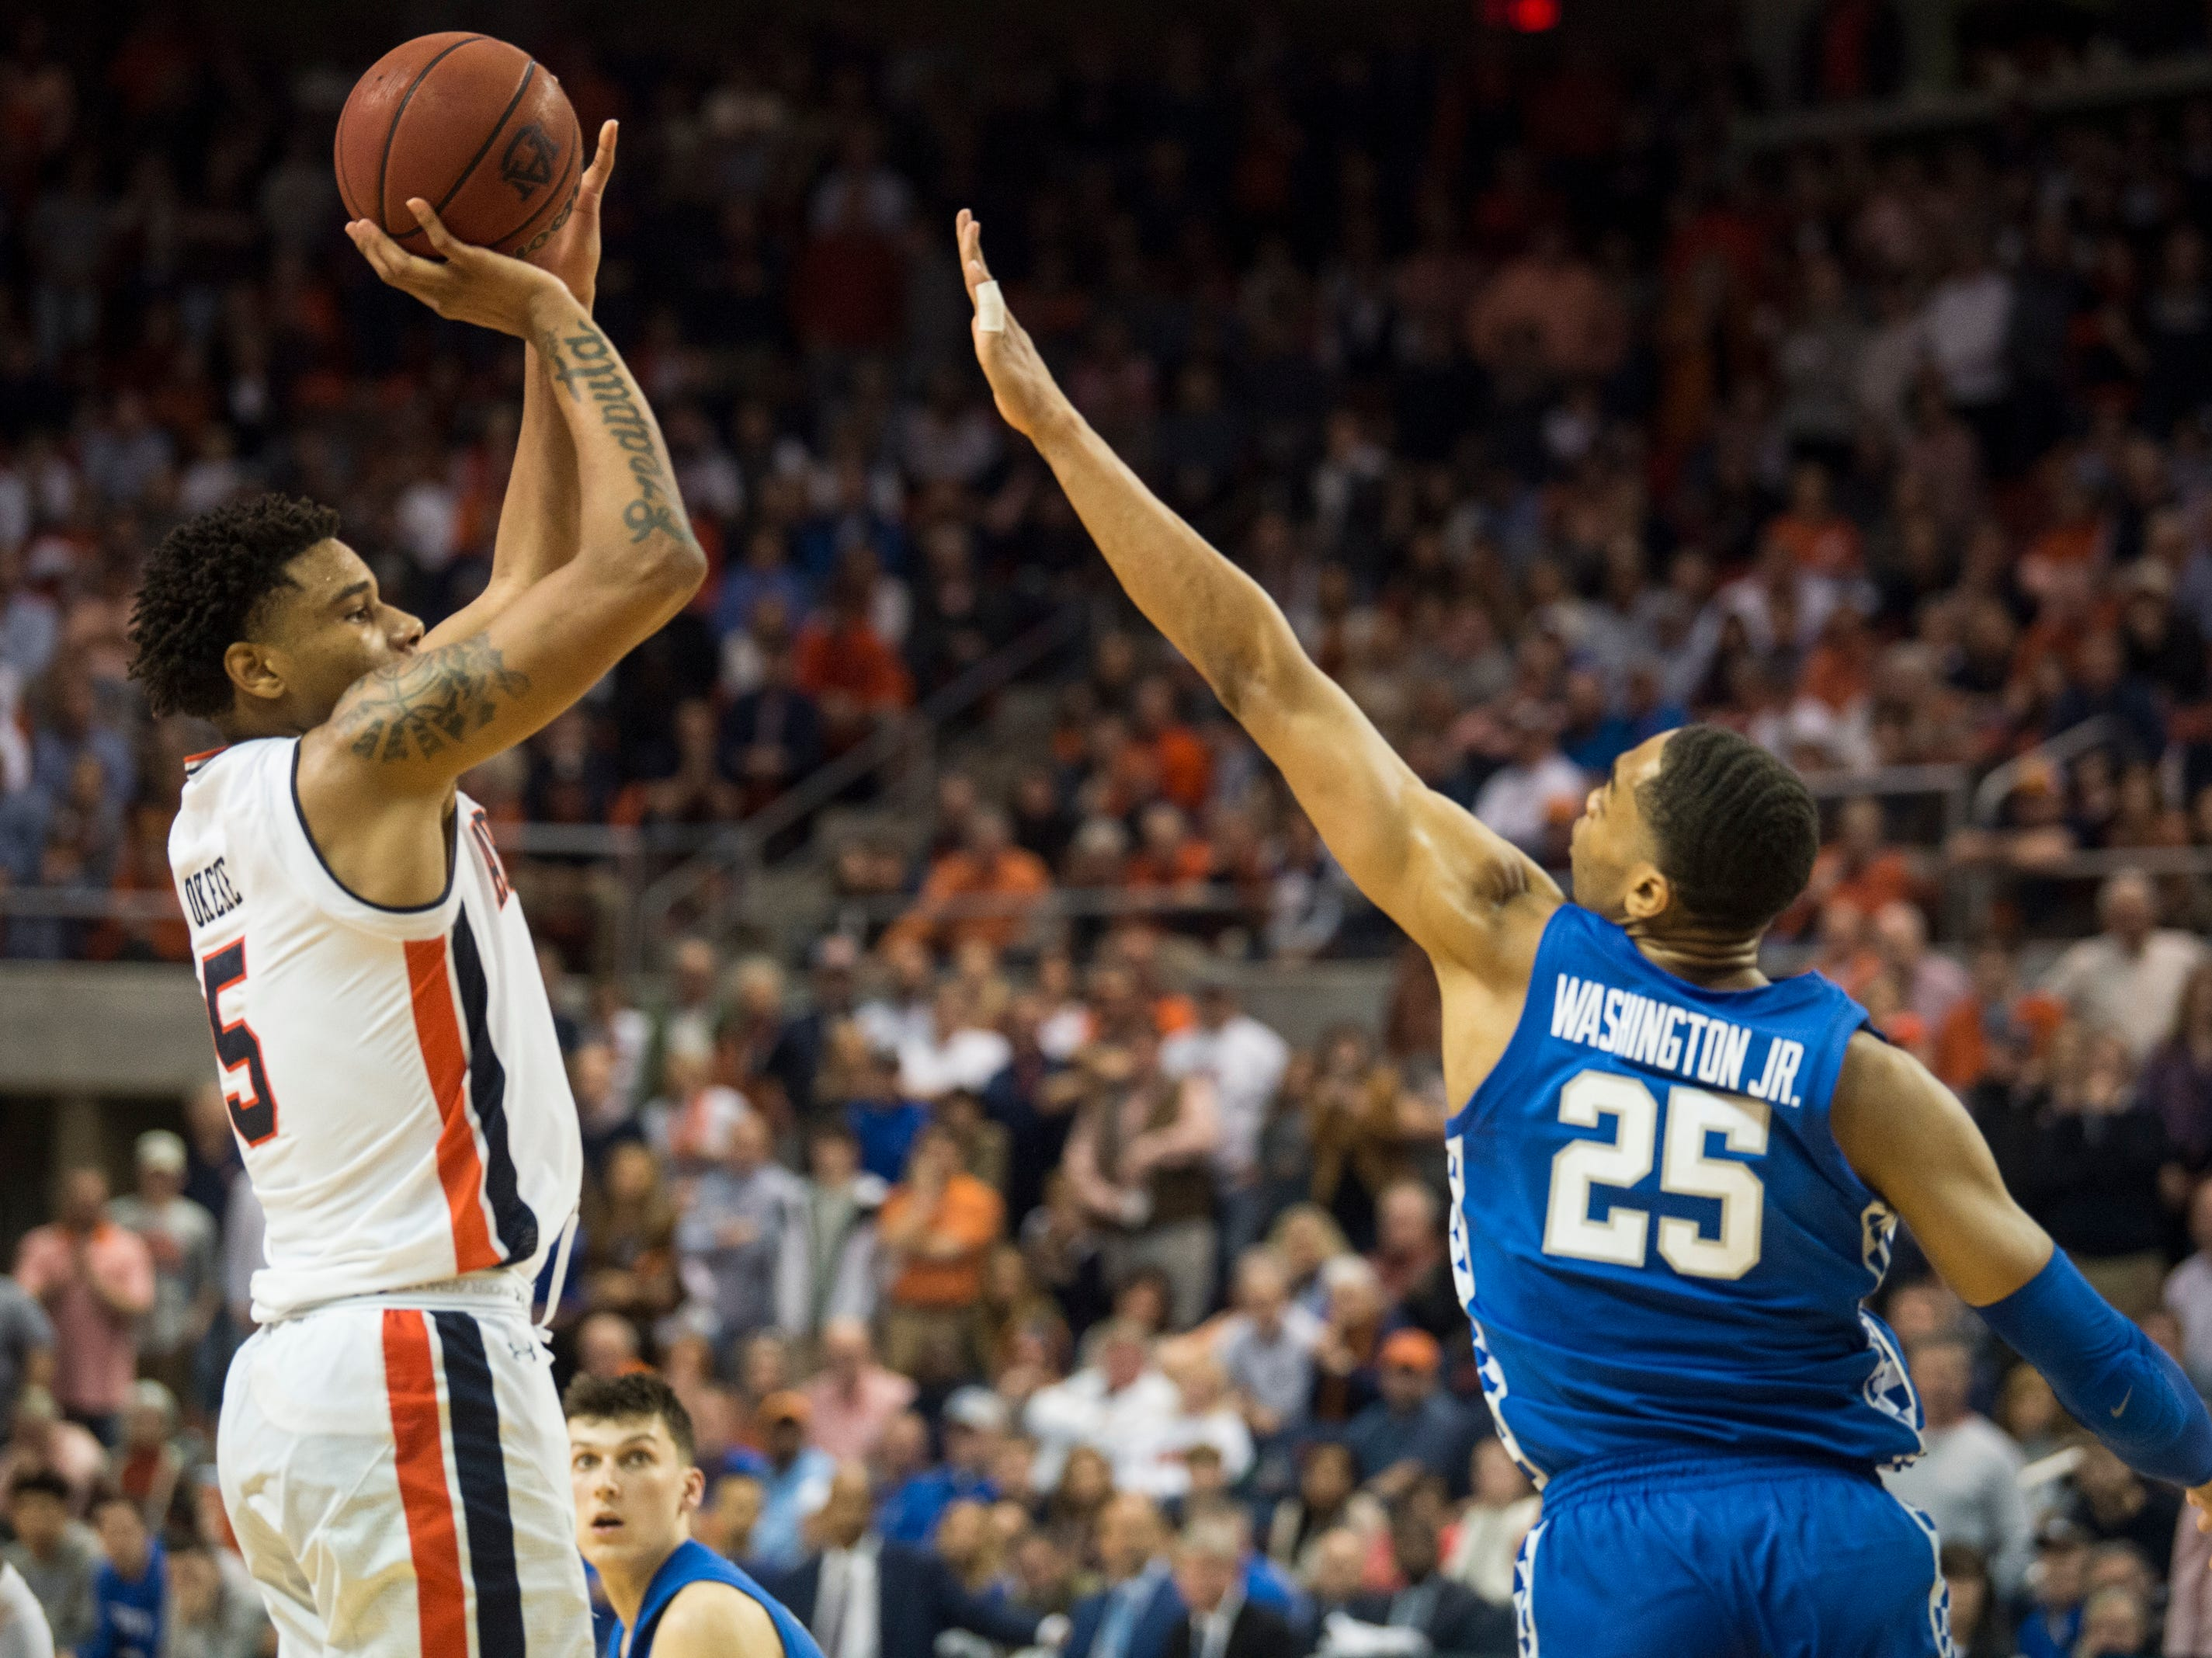 Auburn forward Chuma Okeke (5) attempts a three pointer over Kentucky forward PJ Washington (25) at Auburn Arena in Auburn, Ala., on Saturday, Jan. 19, 2019. Kentucky defeats Auburn 82-80.